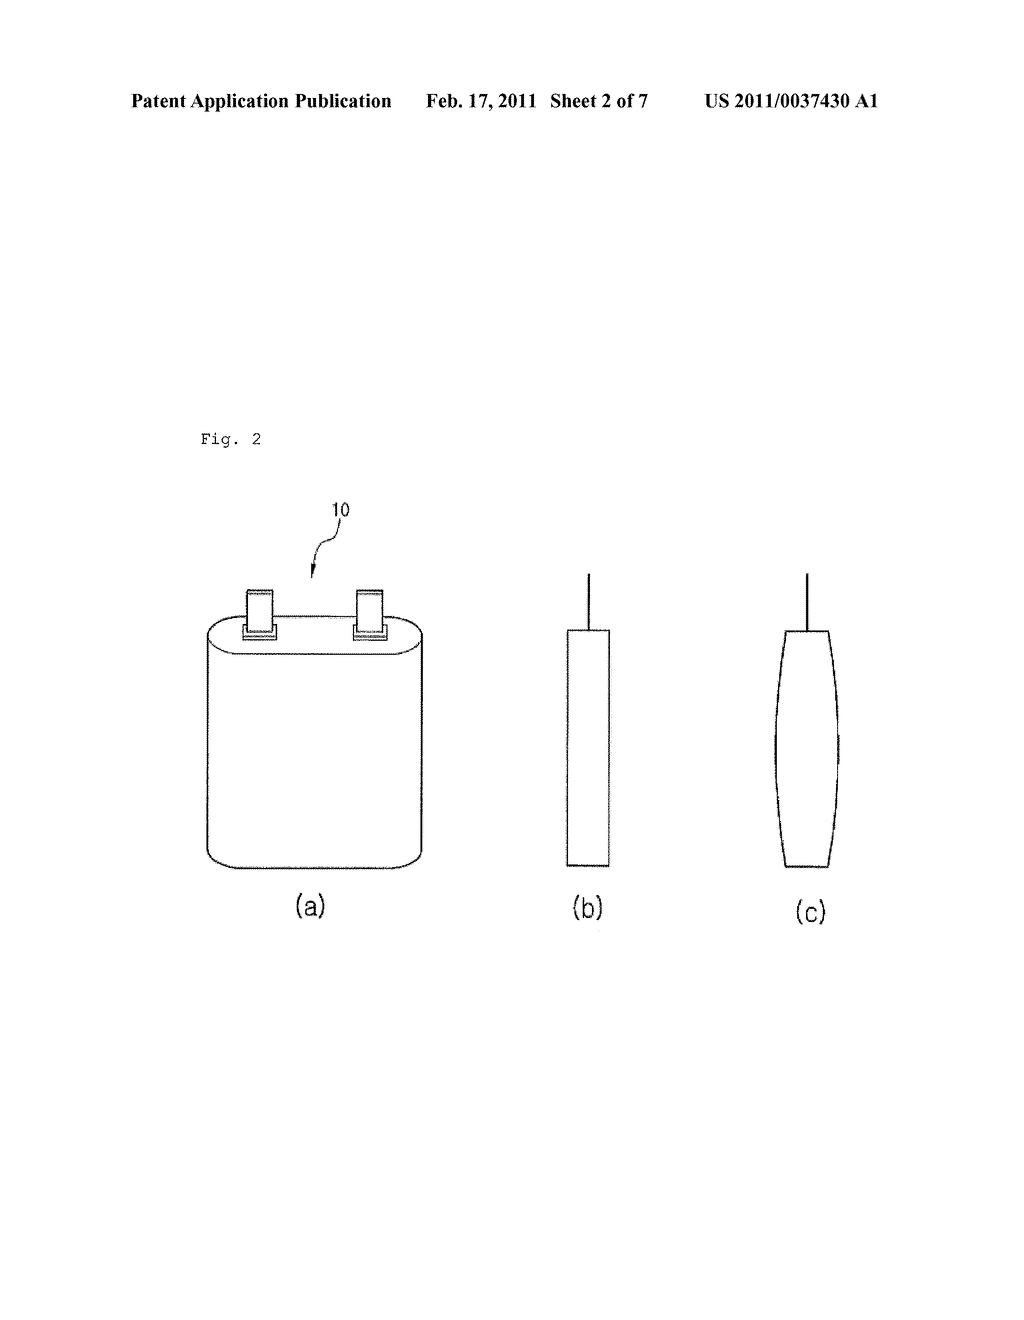 Safety Switch for Secondary Battery for Electric Vehicle and Charging Discharging System for Secondary Battery for Electric Vehicle Using the Same - diagram, schematic, and image 03